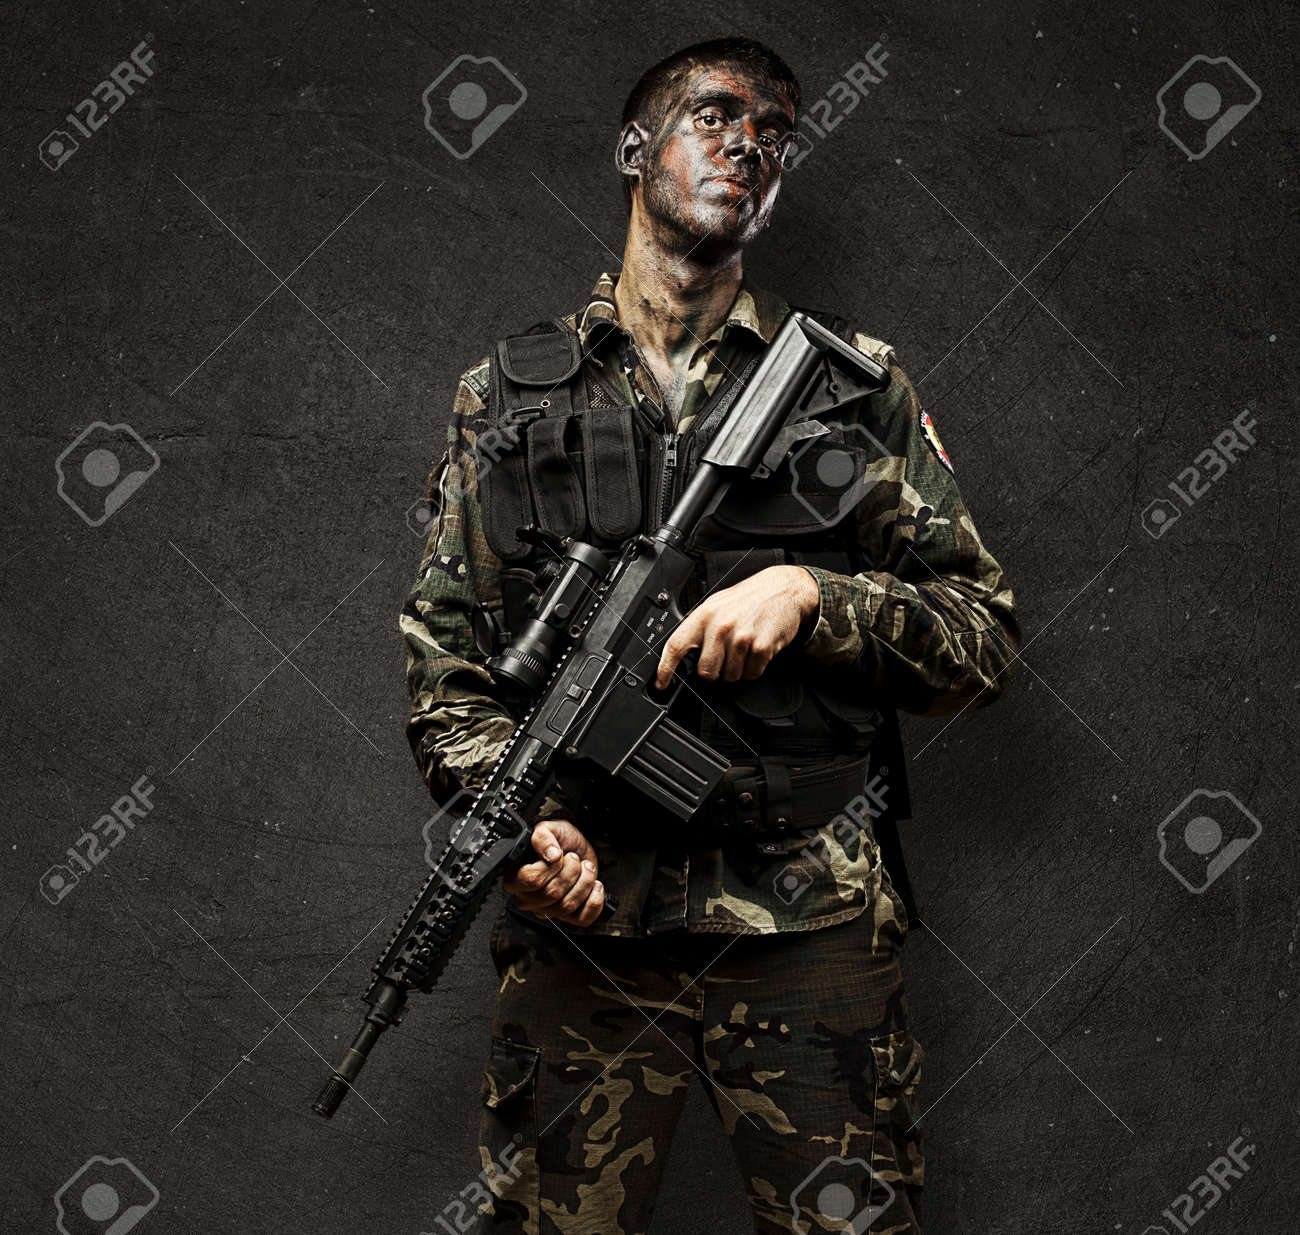 portrait of young soldier holding rifle against a grunge background Stock Photo - 13156210